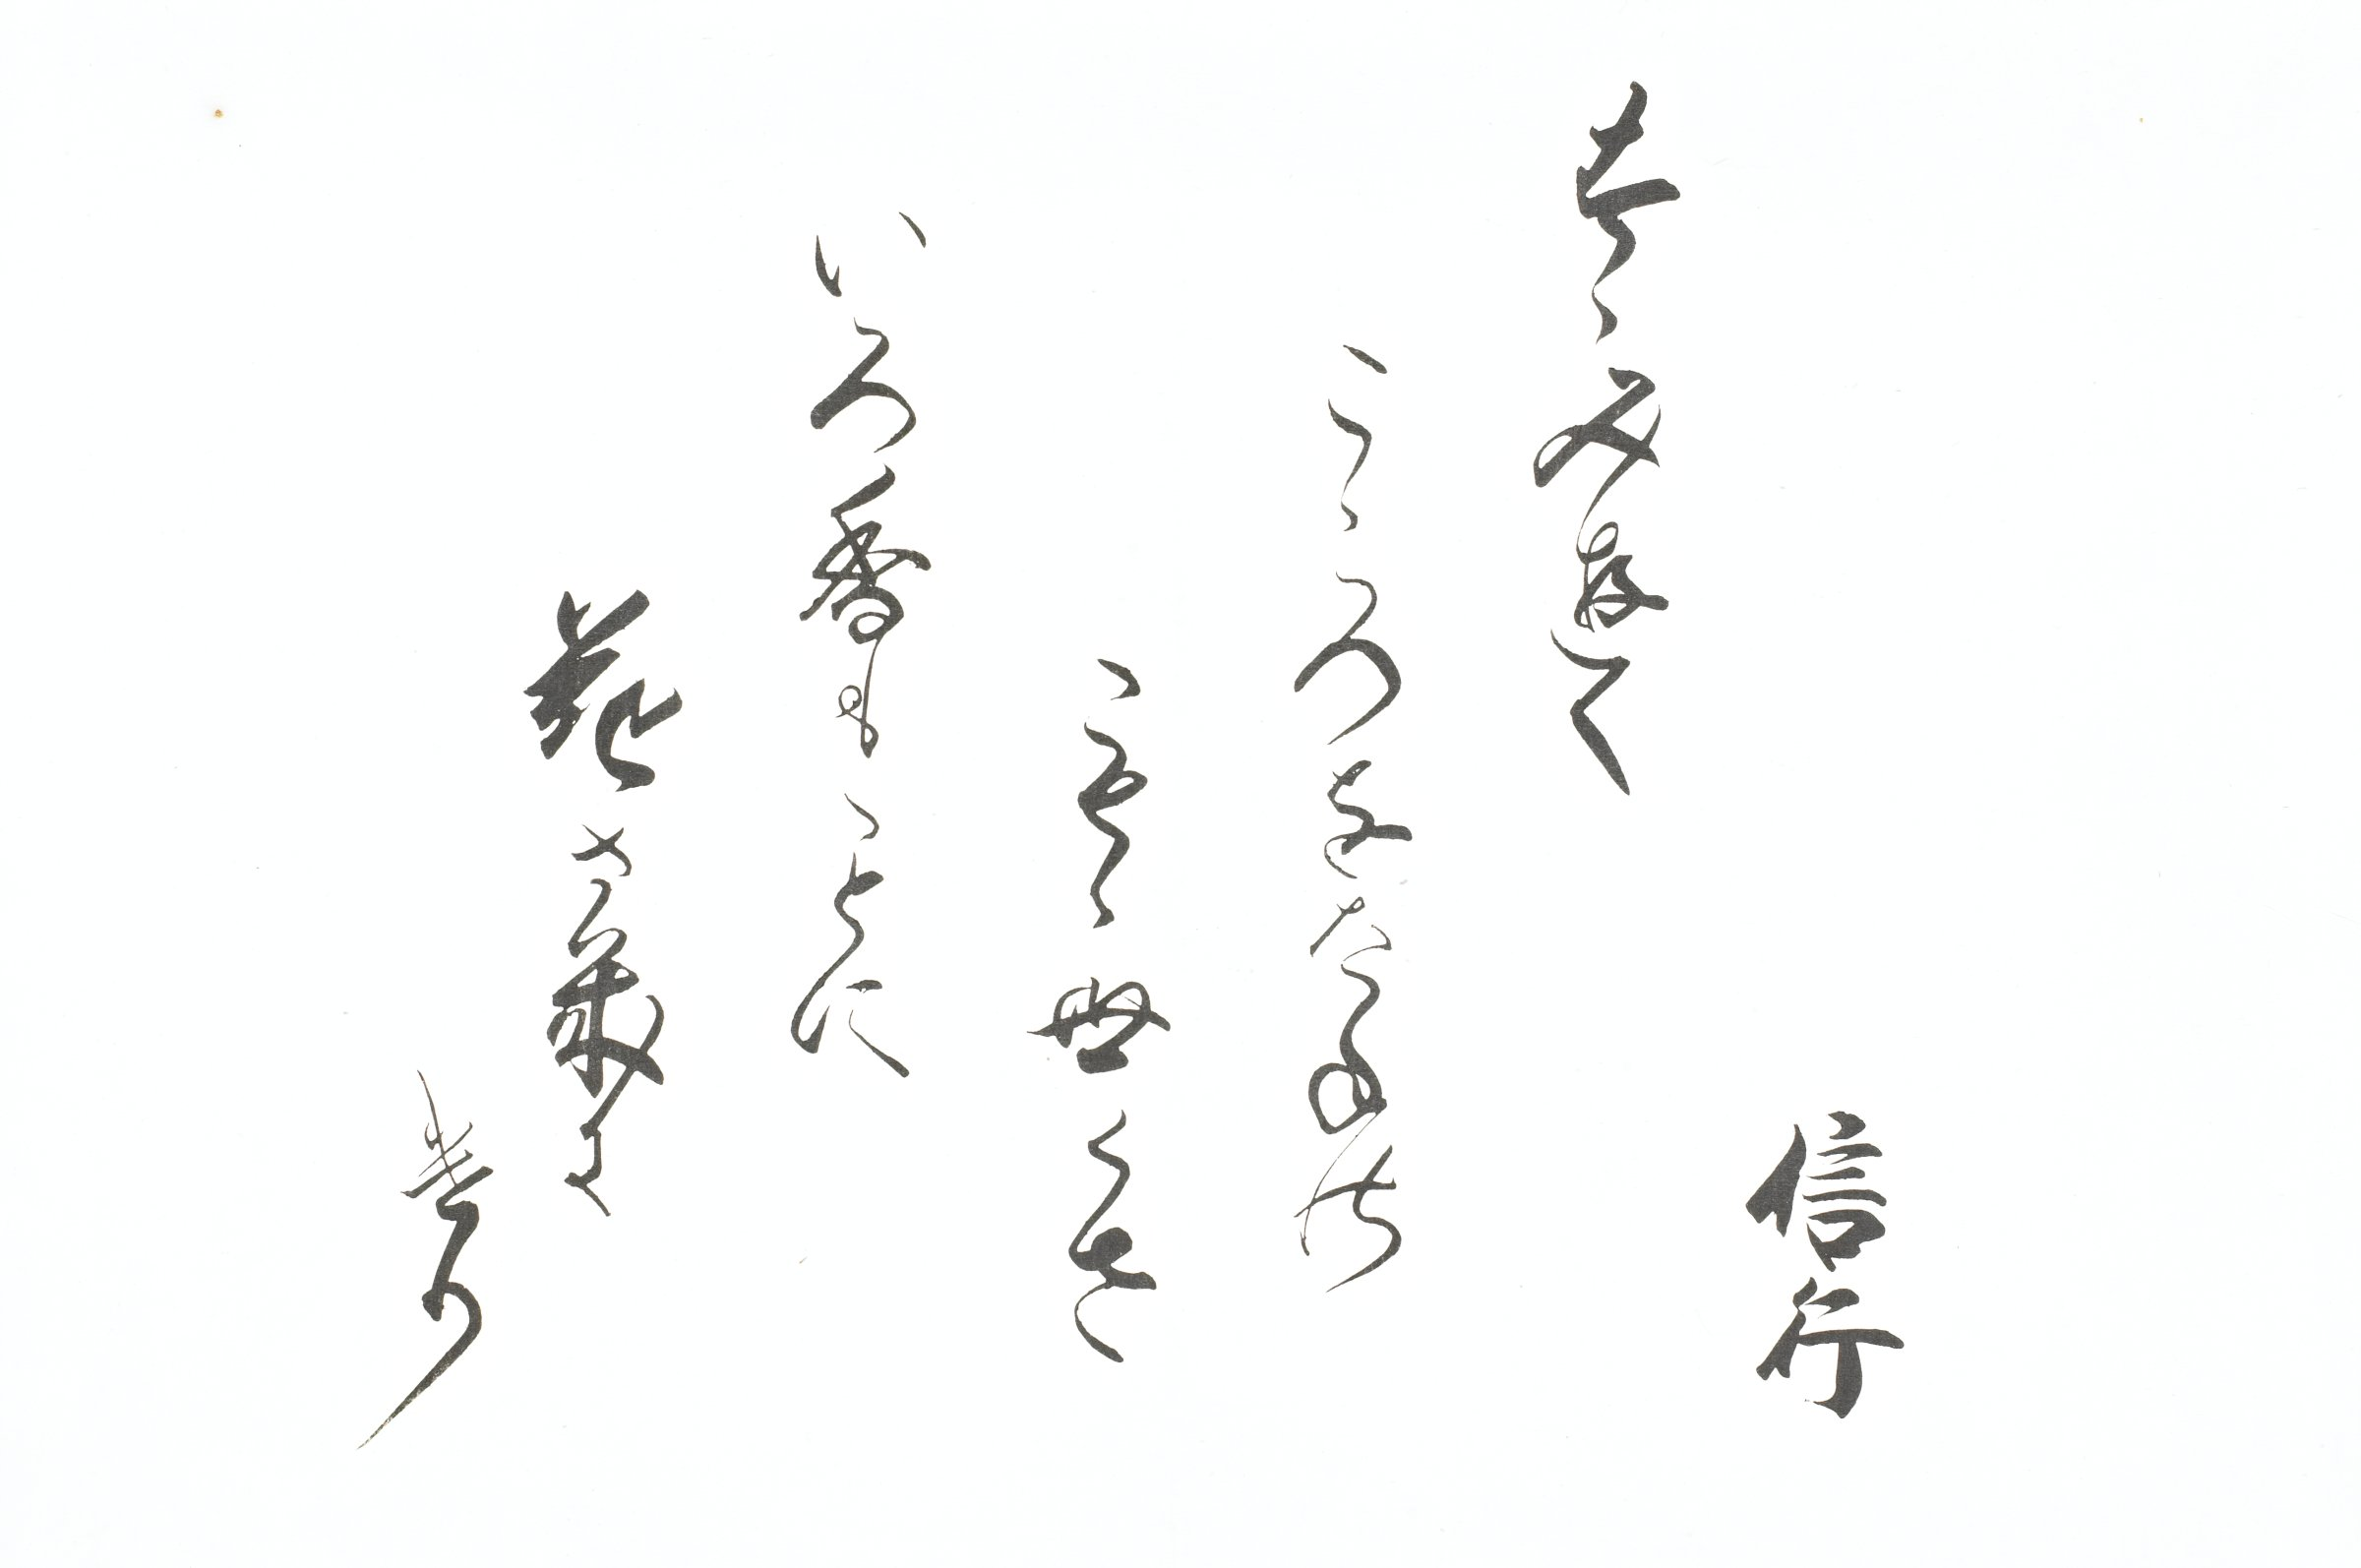 Calligraphy title page with six lines of characters and the signature of the artist.